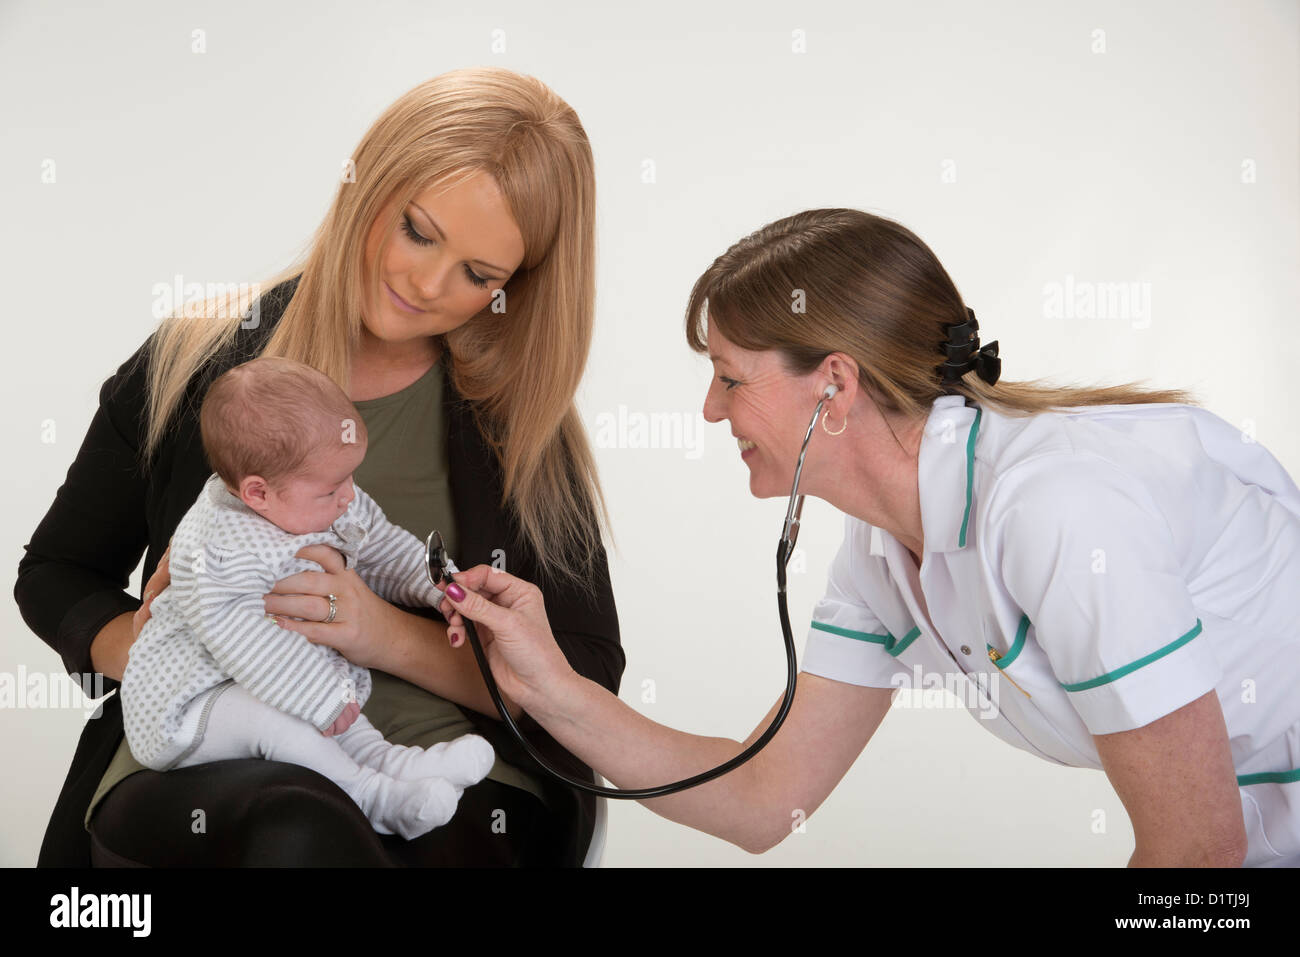 Postnatal checkup for a mother with 4 week old baby girl. Nurse holding stethoscope - Stock Image